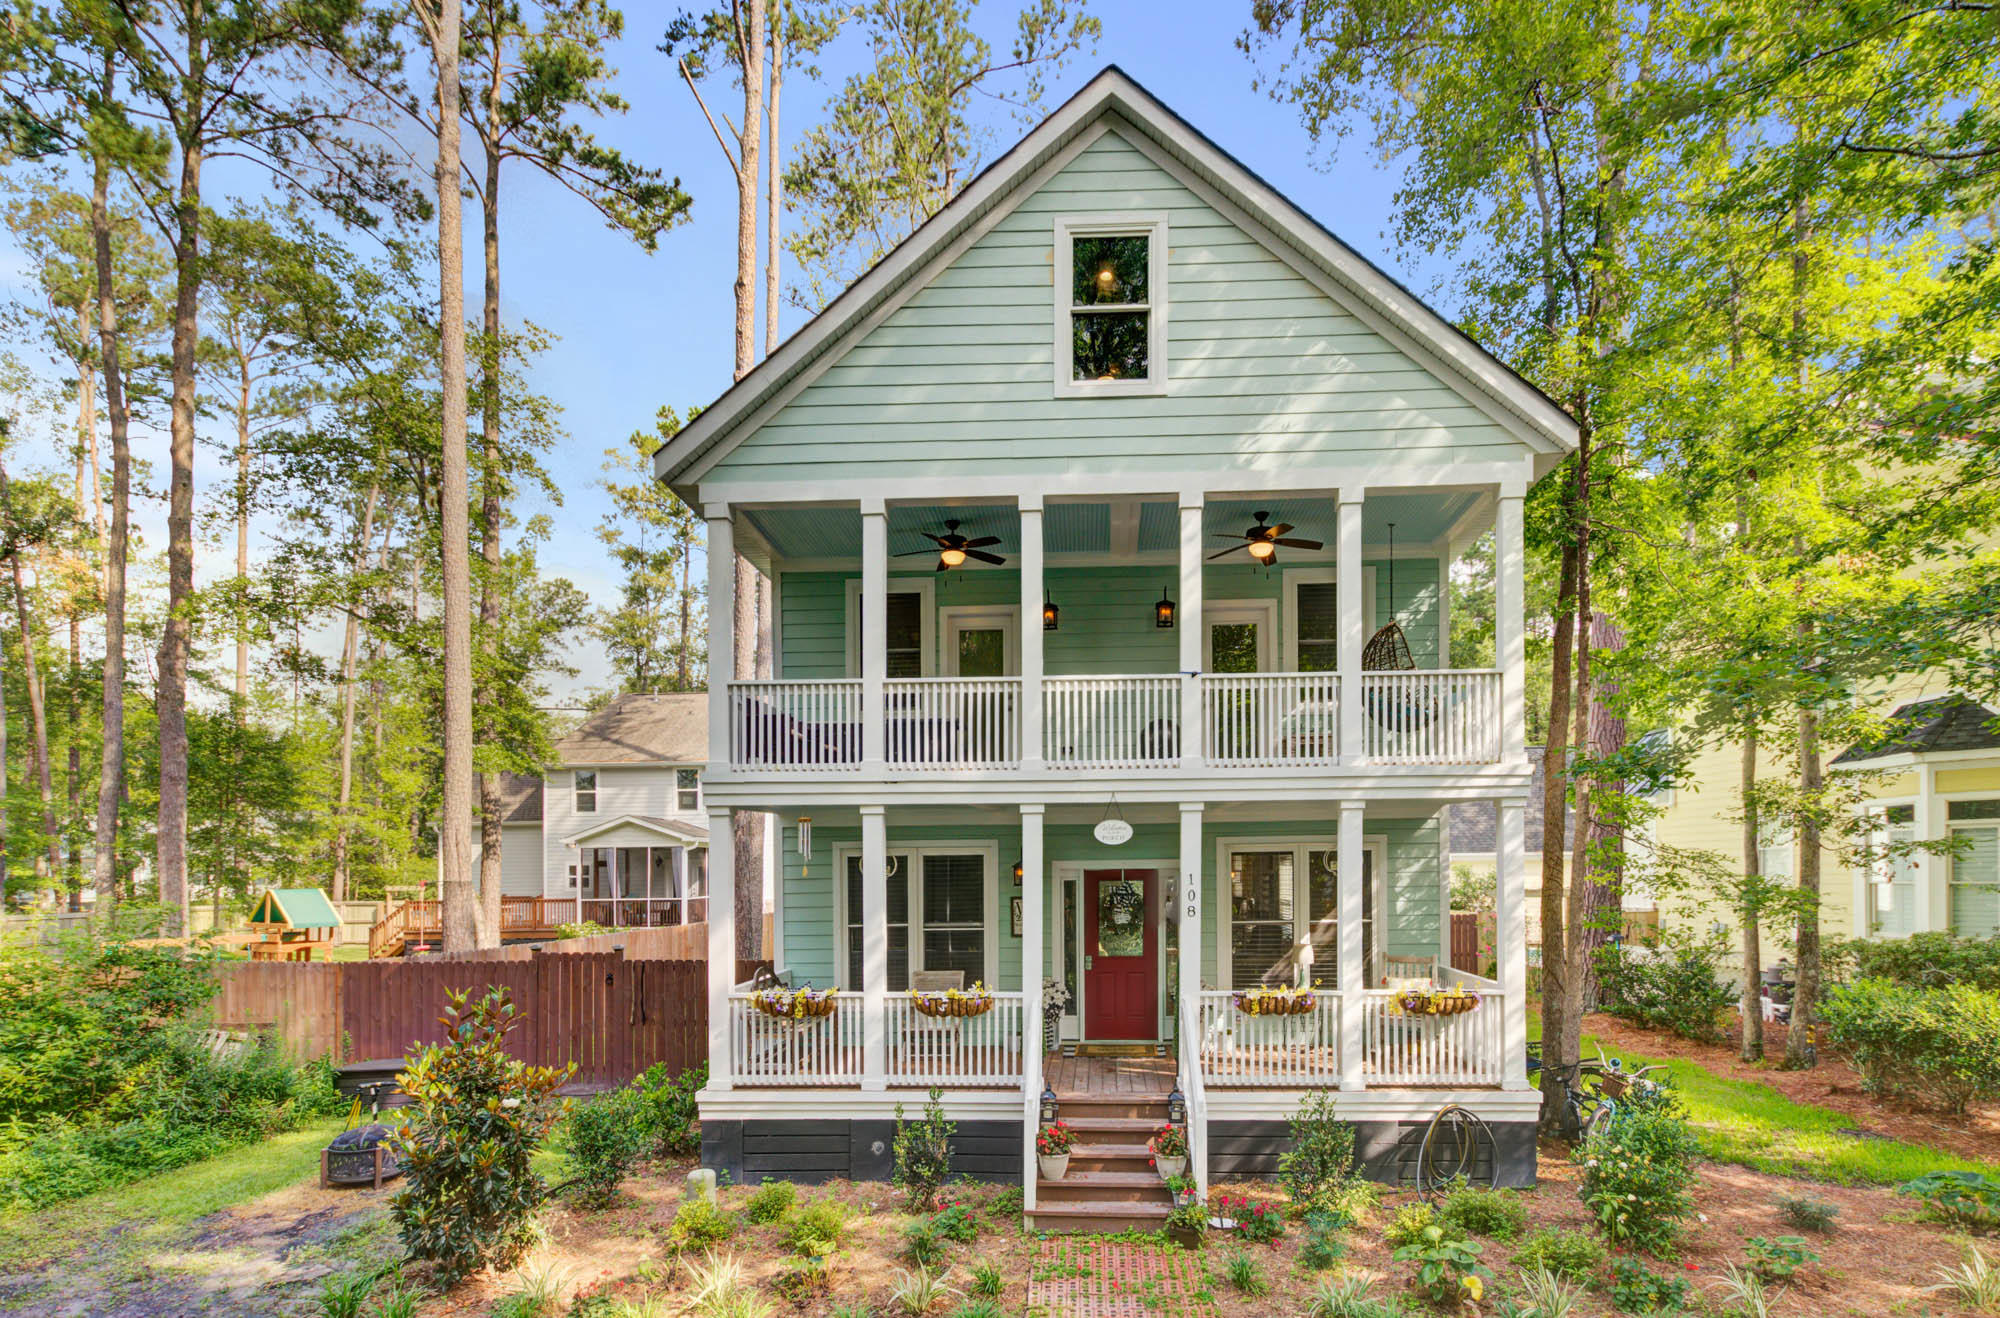 108 Lowndes Lane Summerville, SC 29483